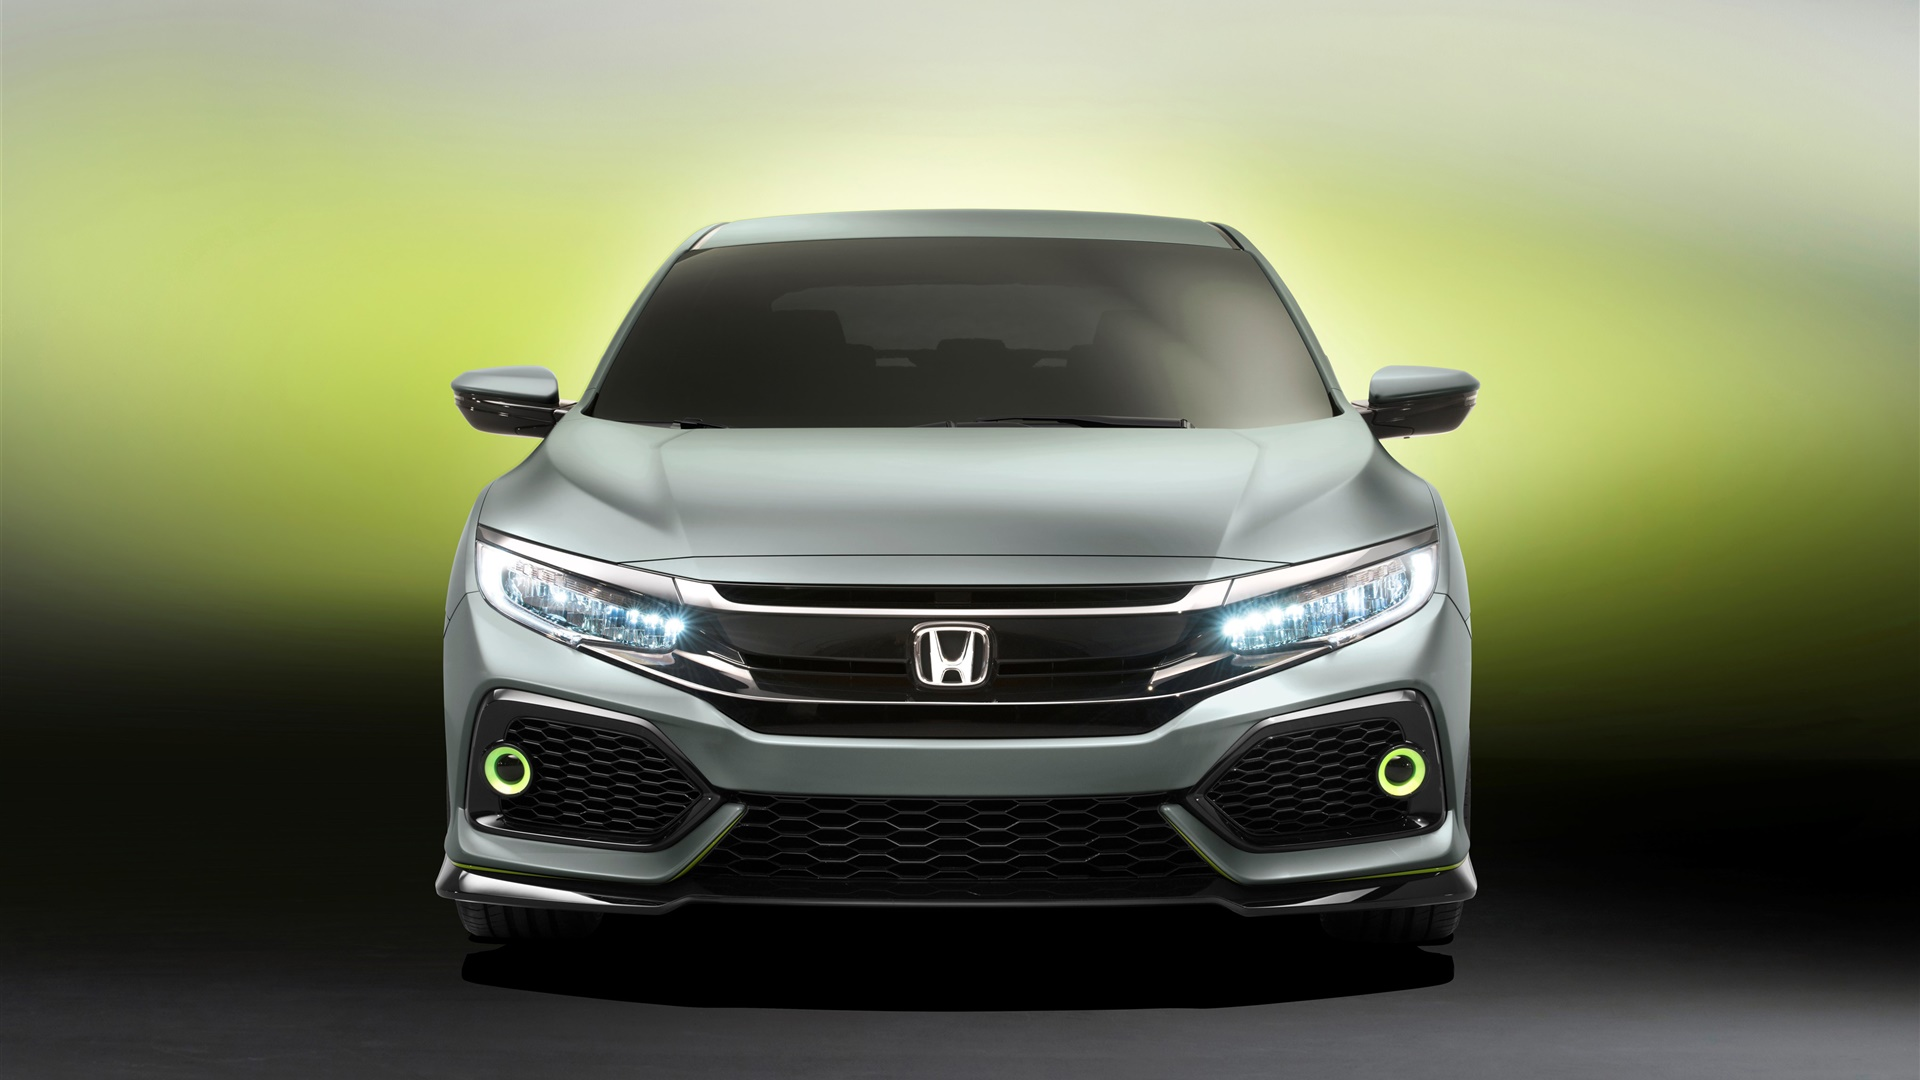 Honda Civic Hatchback car front view 1920x1080 wallpaper